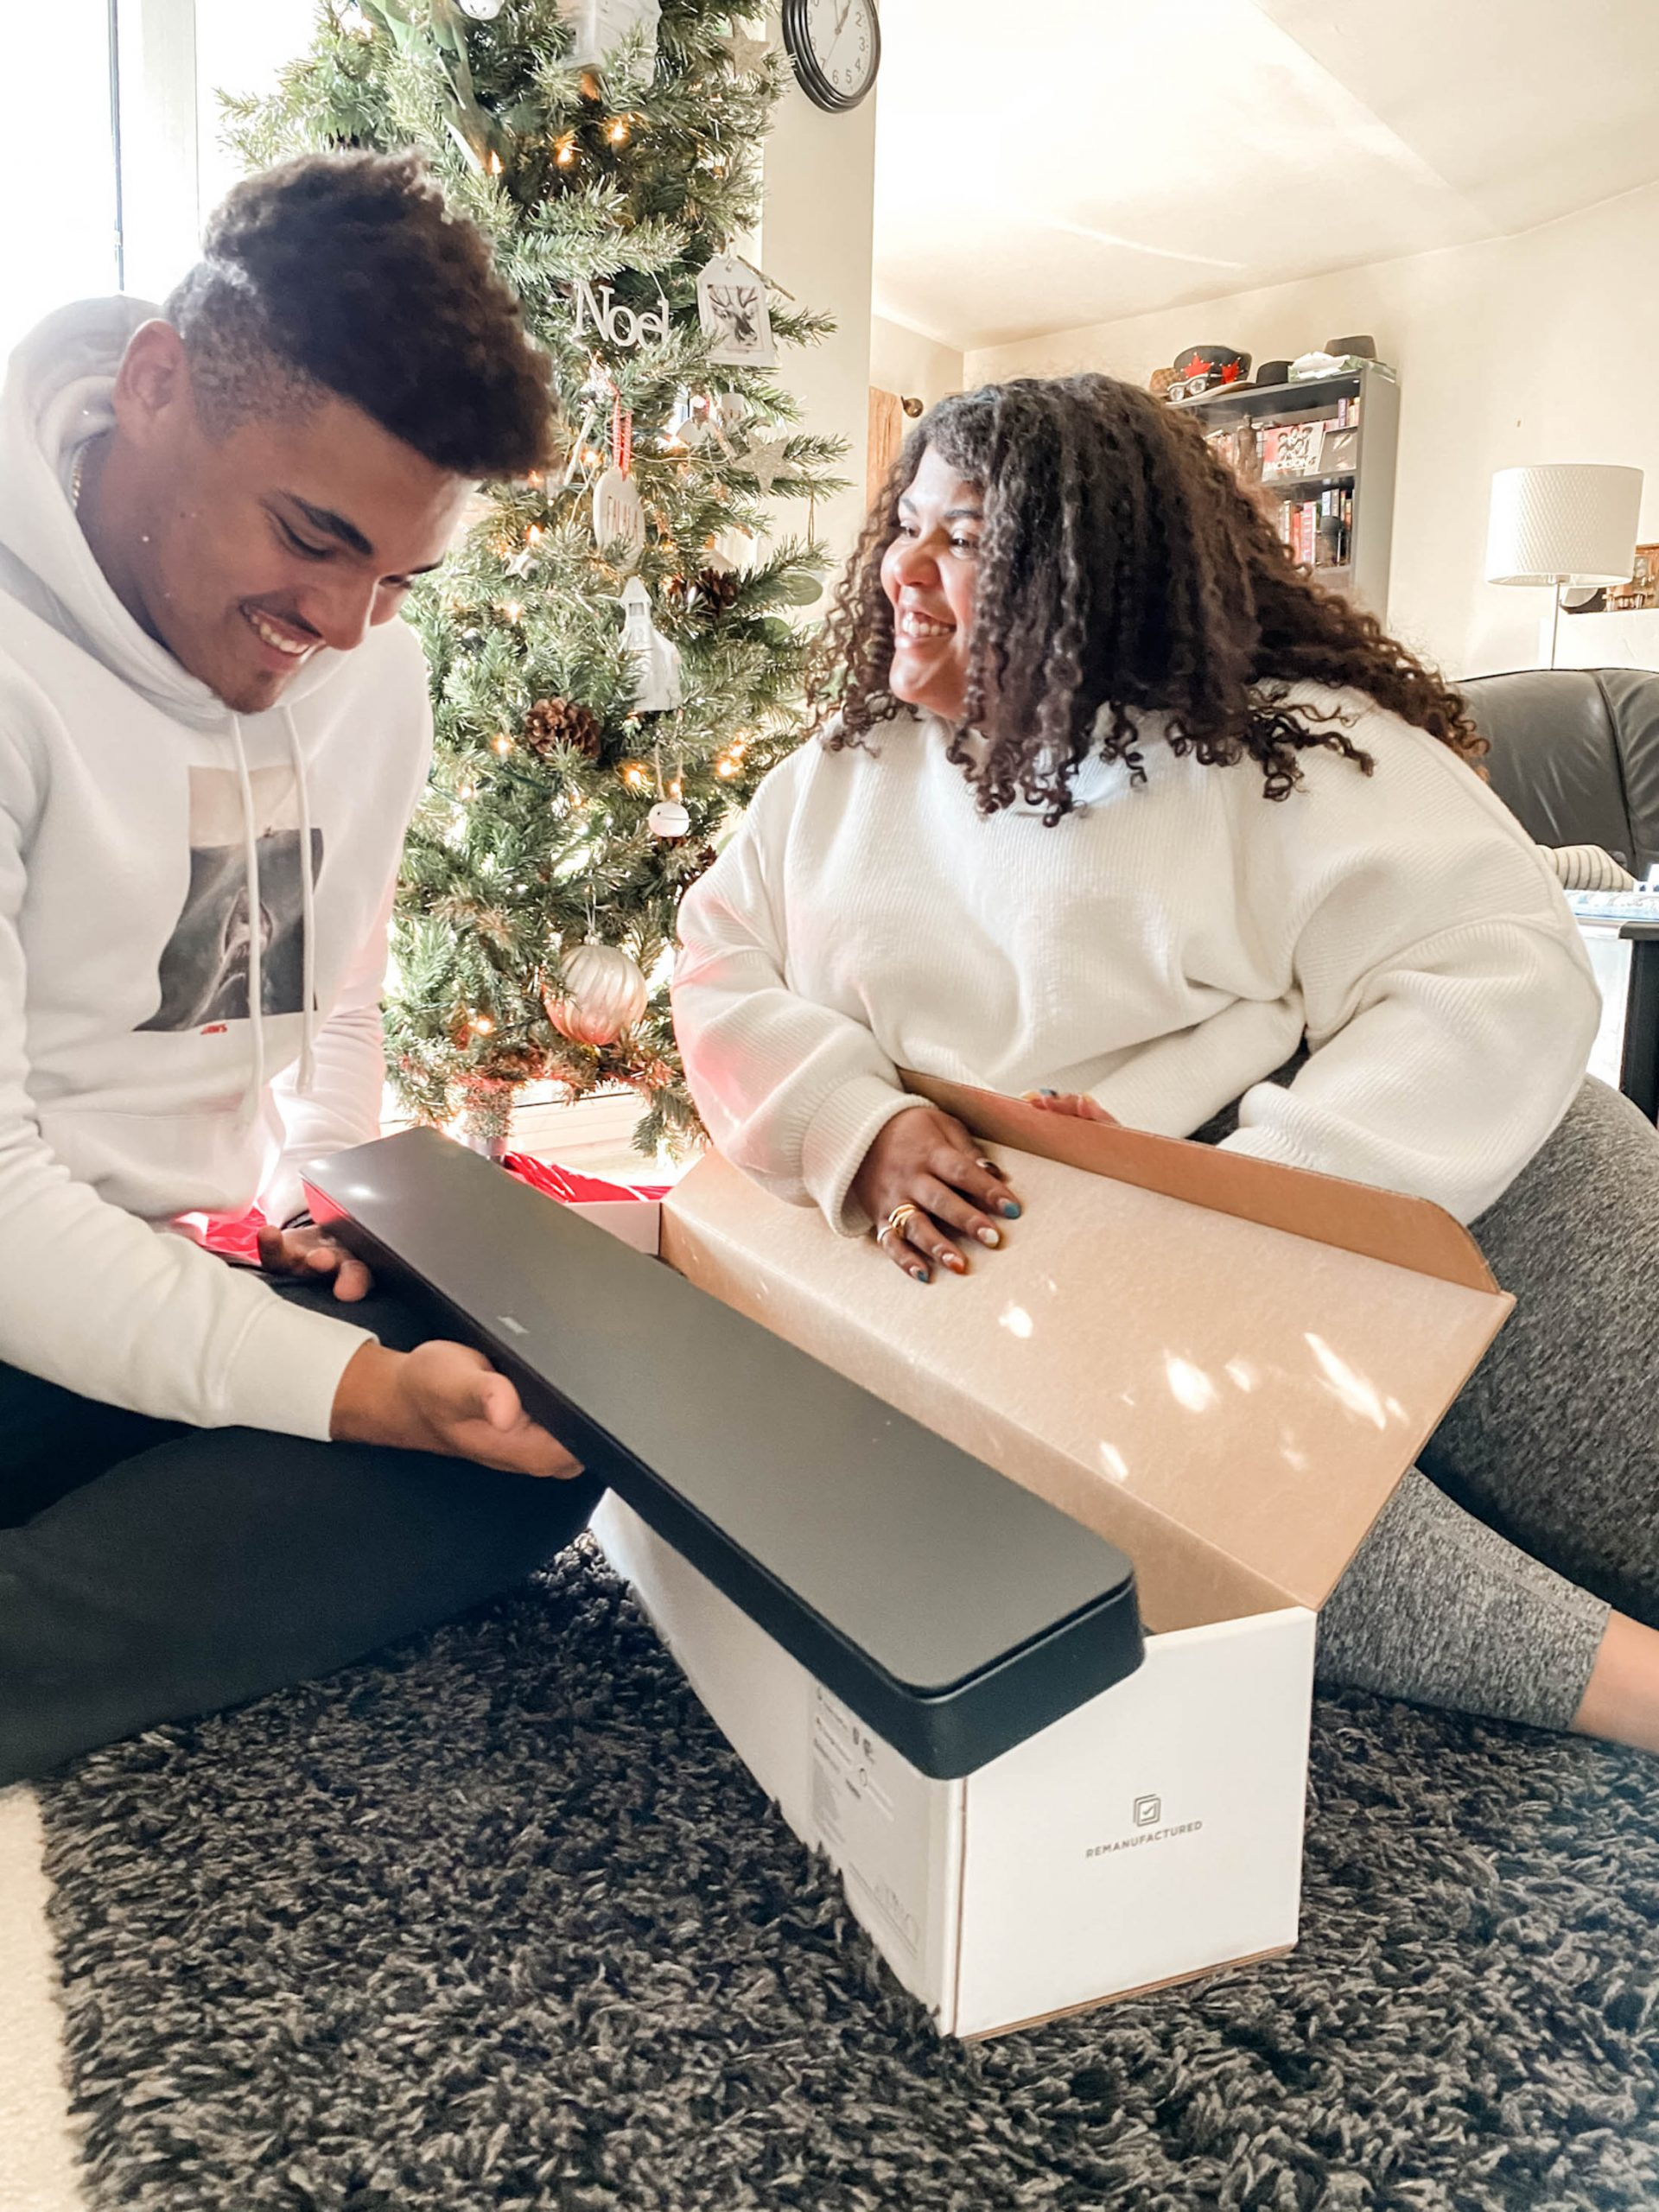 Oh, hey, holiday movies! We're going all-in on the family theater experience, starting with refurbished electronics to make things a li'l greener & more affordable.